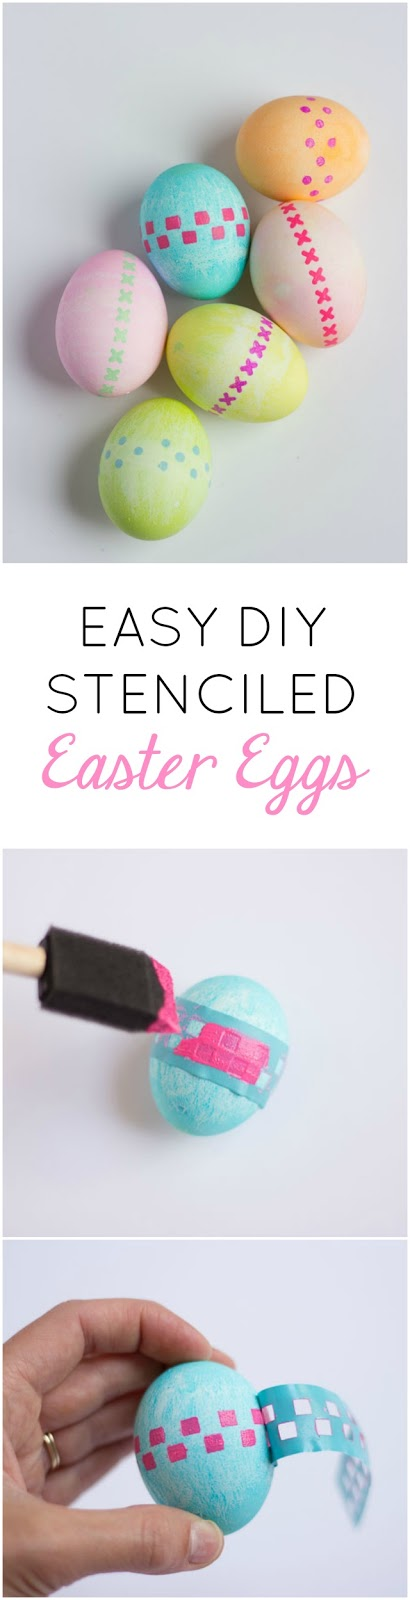 Paint Easter eggs with adhesive stencils - it is so easy!